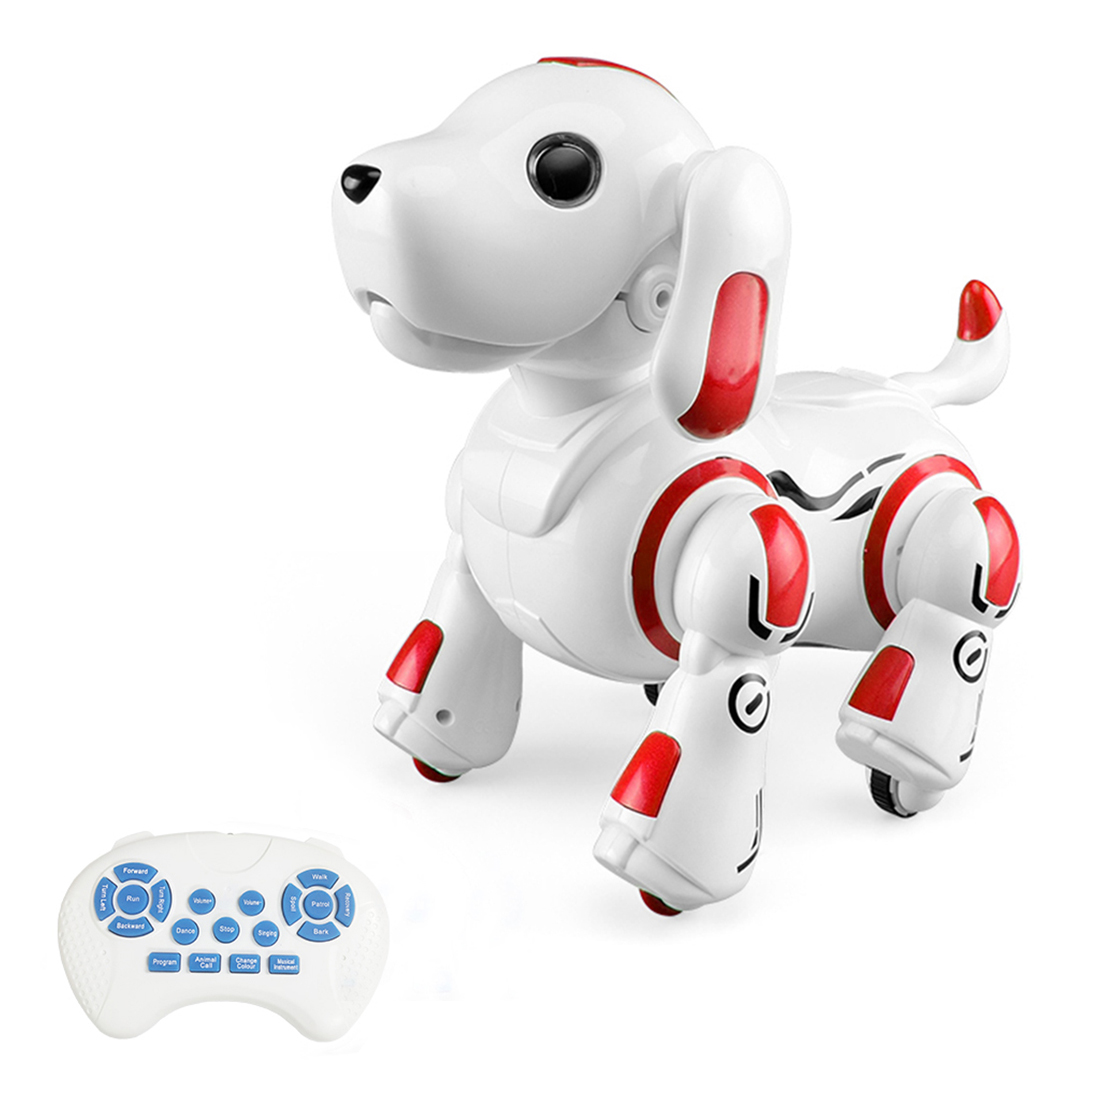 Remote Control Programming Robot Dog Robotic Pet Dog Smart Robot Puppy For Children Educational Toys Gift - Glock Gen.2 Red/Blue